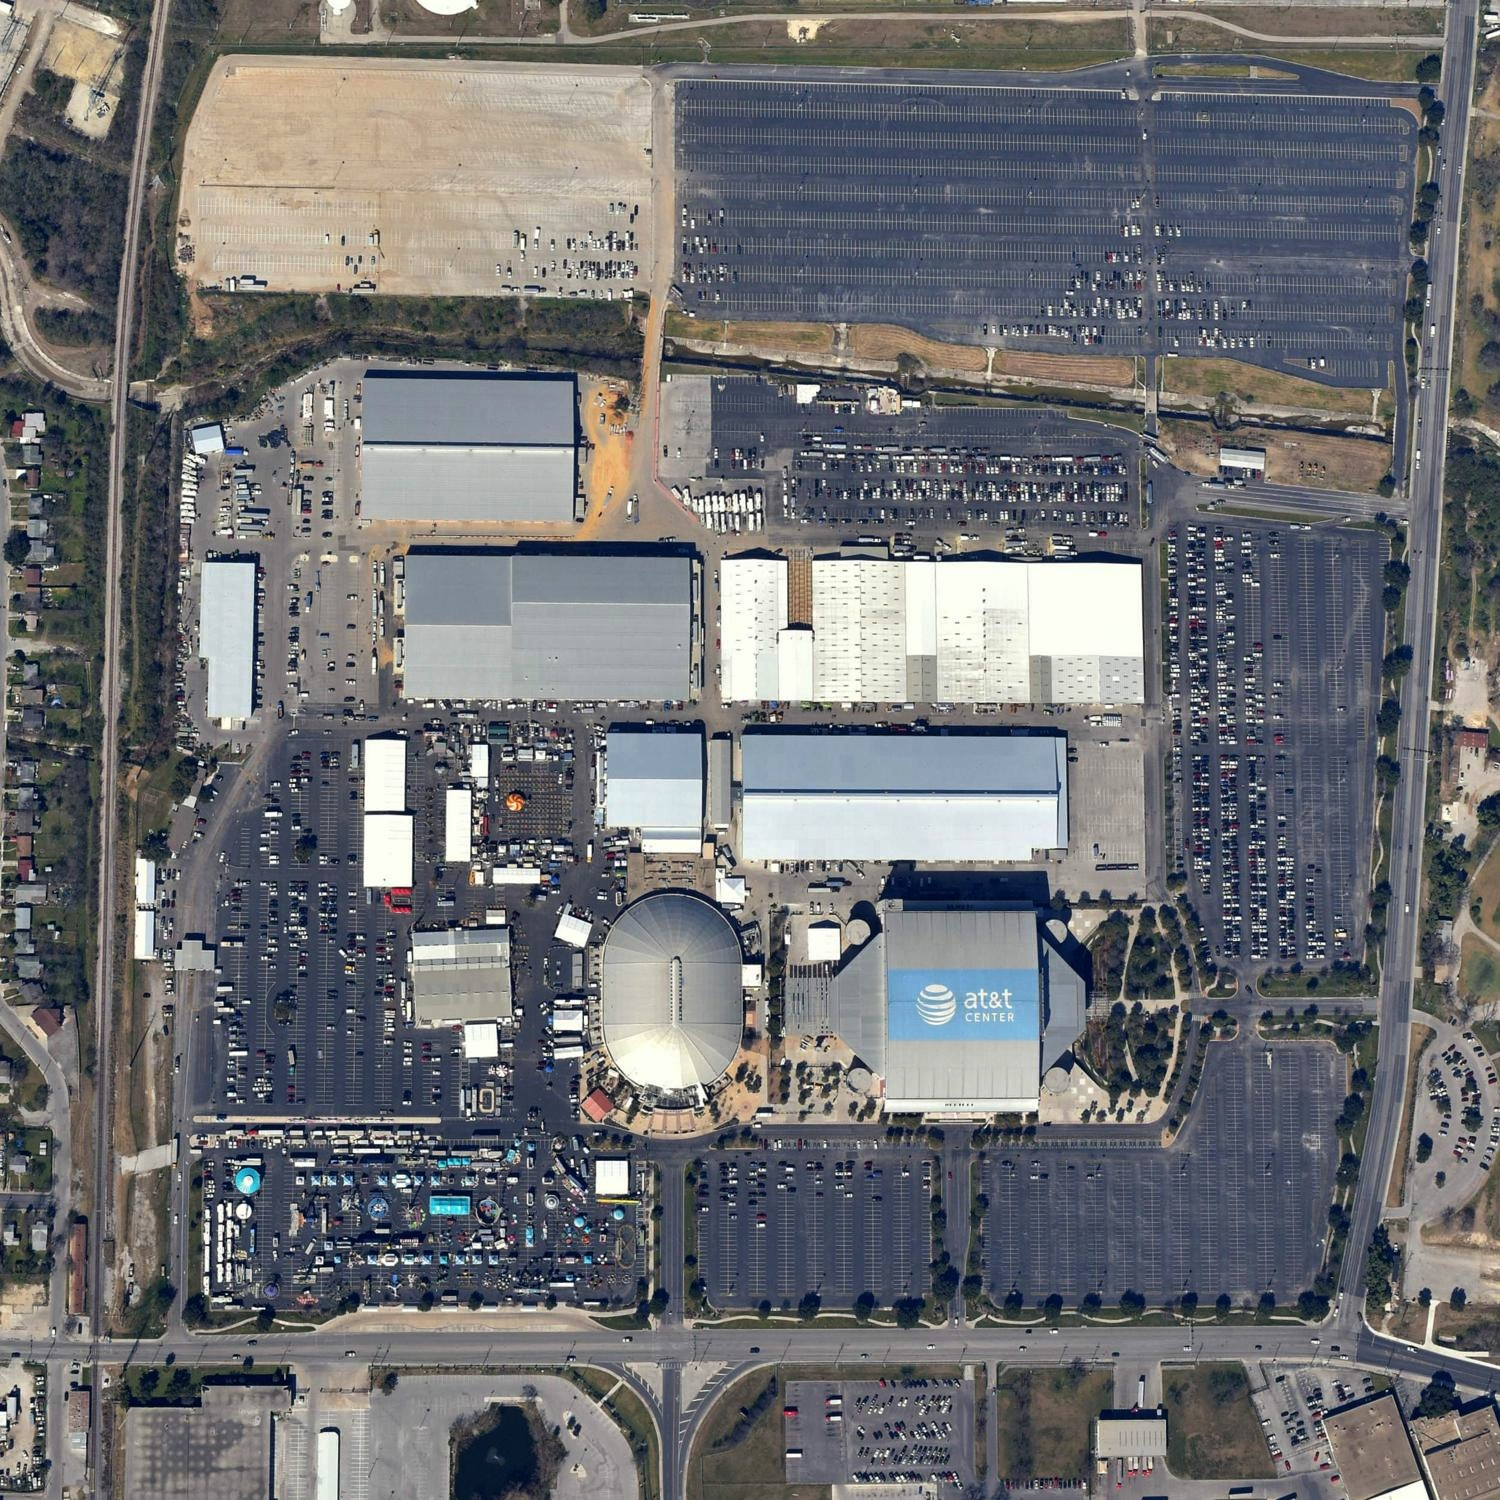 at&t Center, San Antonio, Texas - Vertical Imagery - San Antonio Aerial Photography - San Antonio, TX